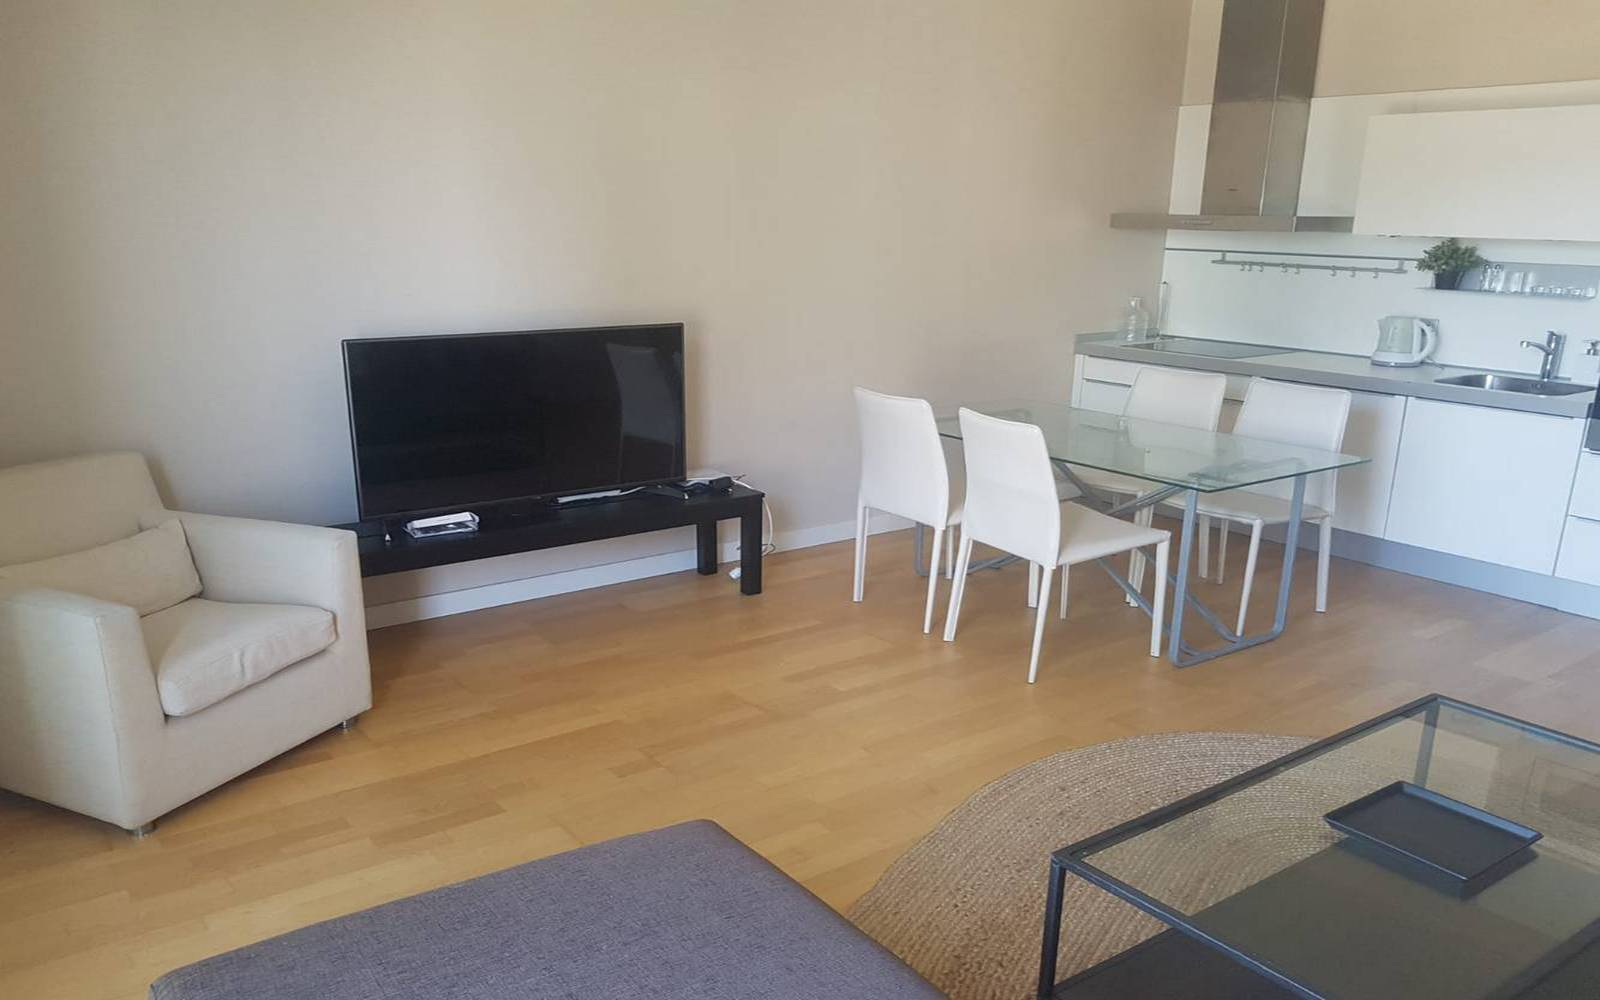 Anthill - 2 + 1 Furnished Apartment for Rent